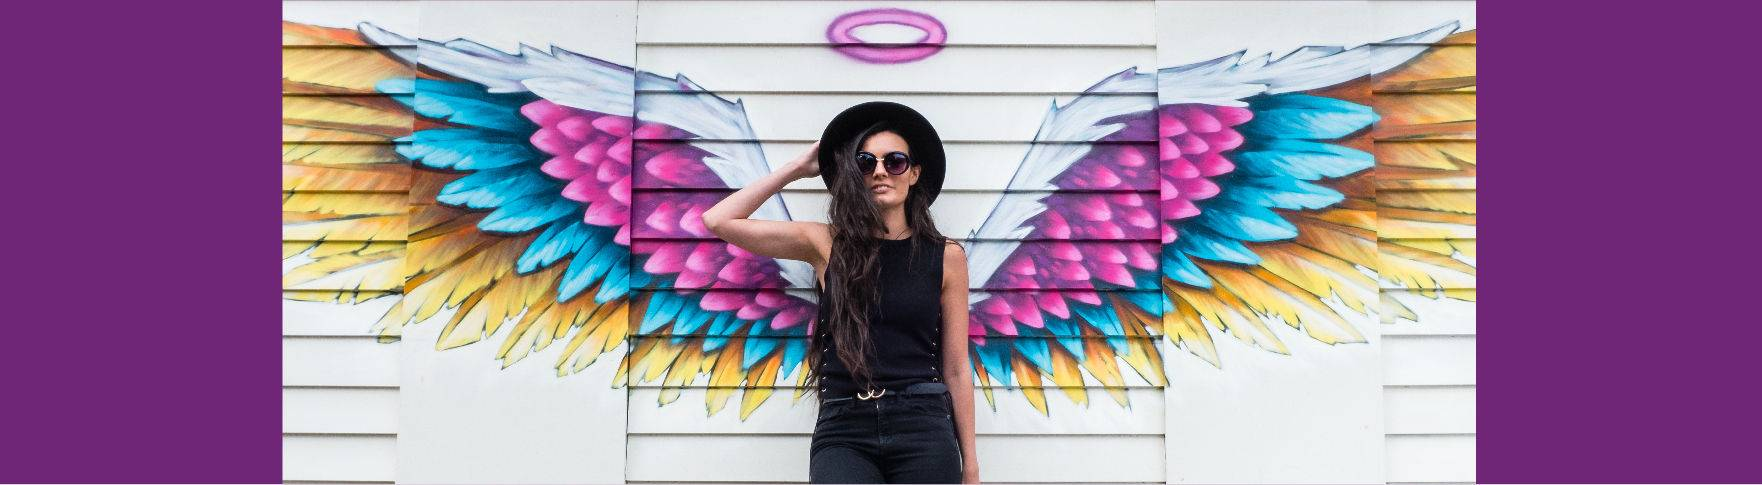 A woman standing in front of a pair of graffiti angel wings